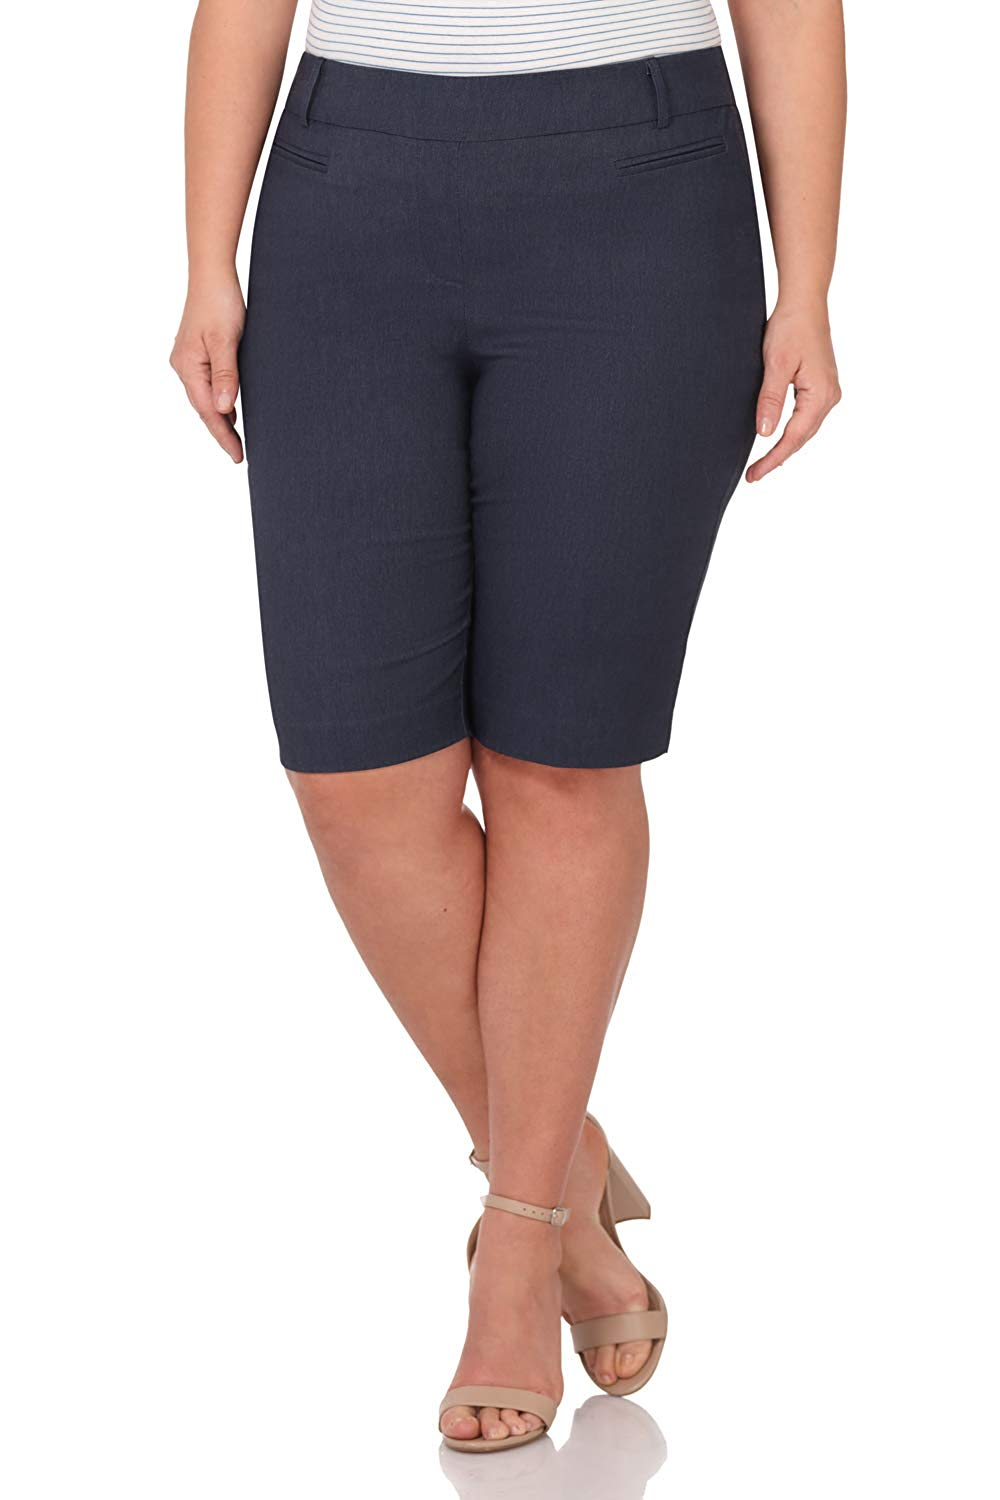 Women's Ease In To Comfort Curvy Fit Plus Size Modern City Short Casual  Ankle-Length Pants 3 Pieces